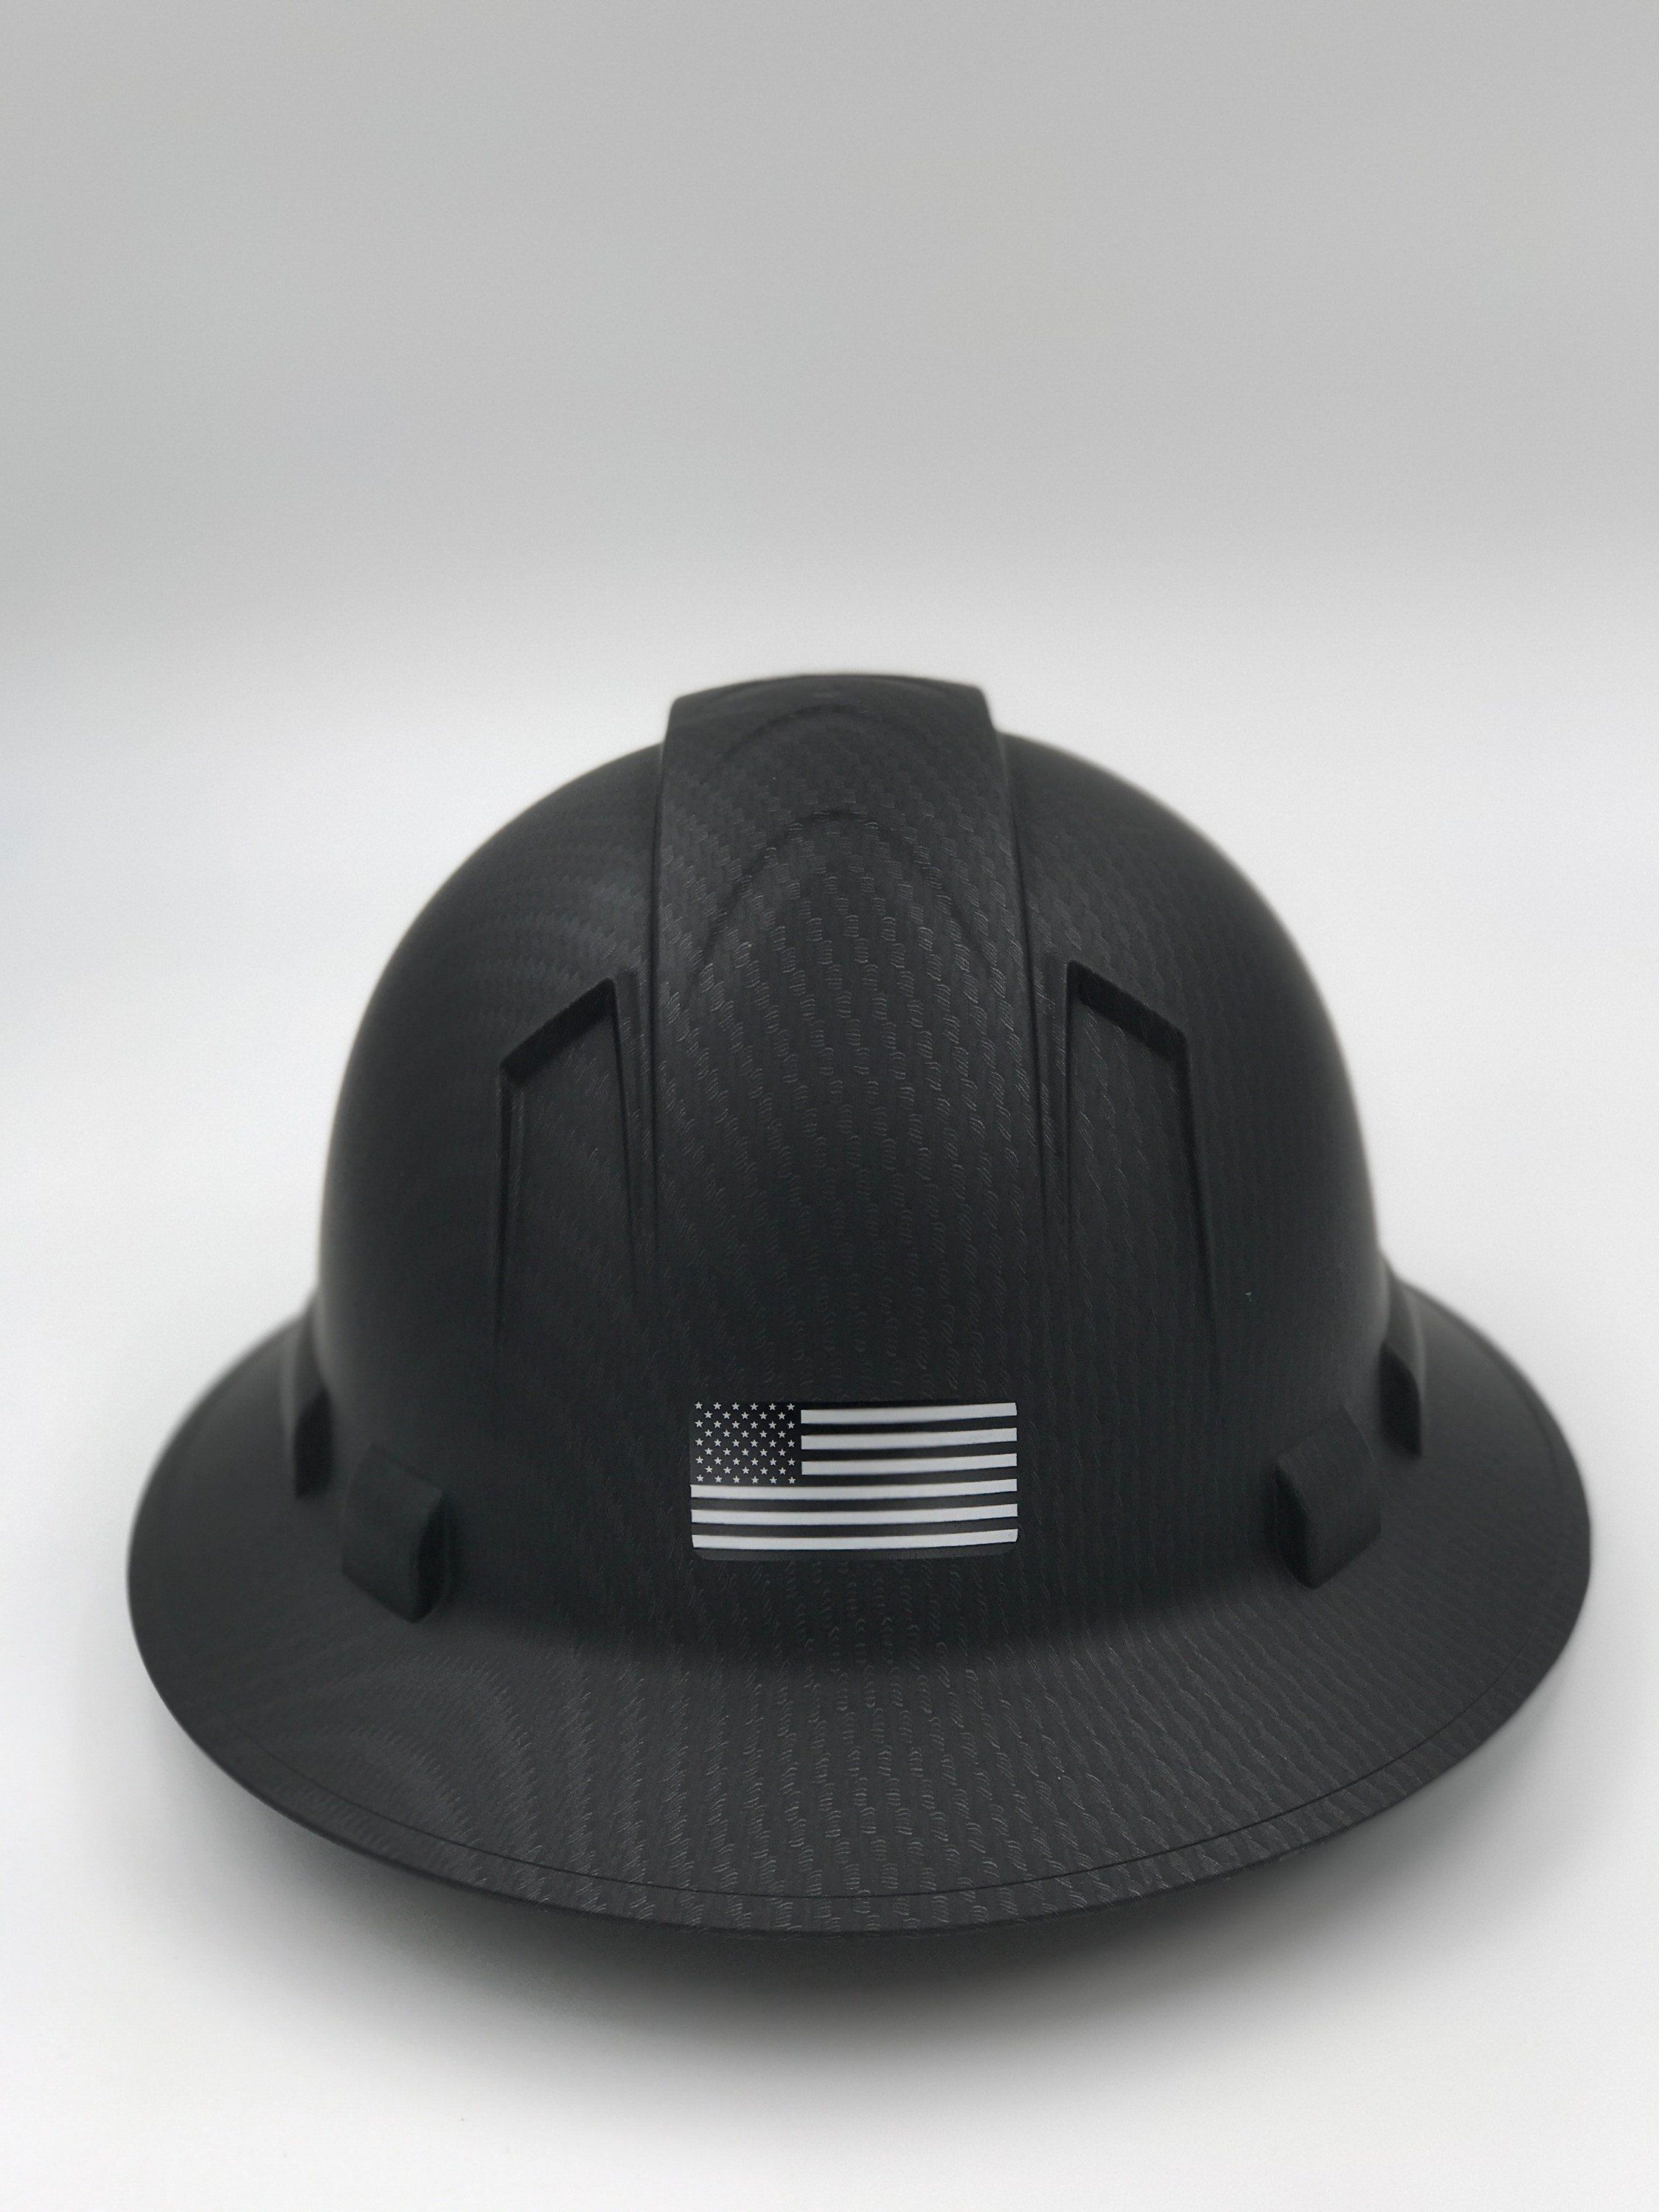 6b57c5a61f4 Custom Printed Black Ops Special Edition Pyramex Hard Hat w  US Flag (Back)